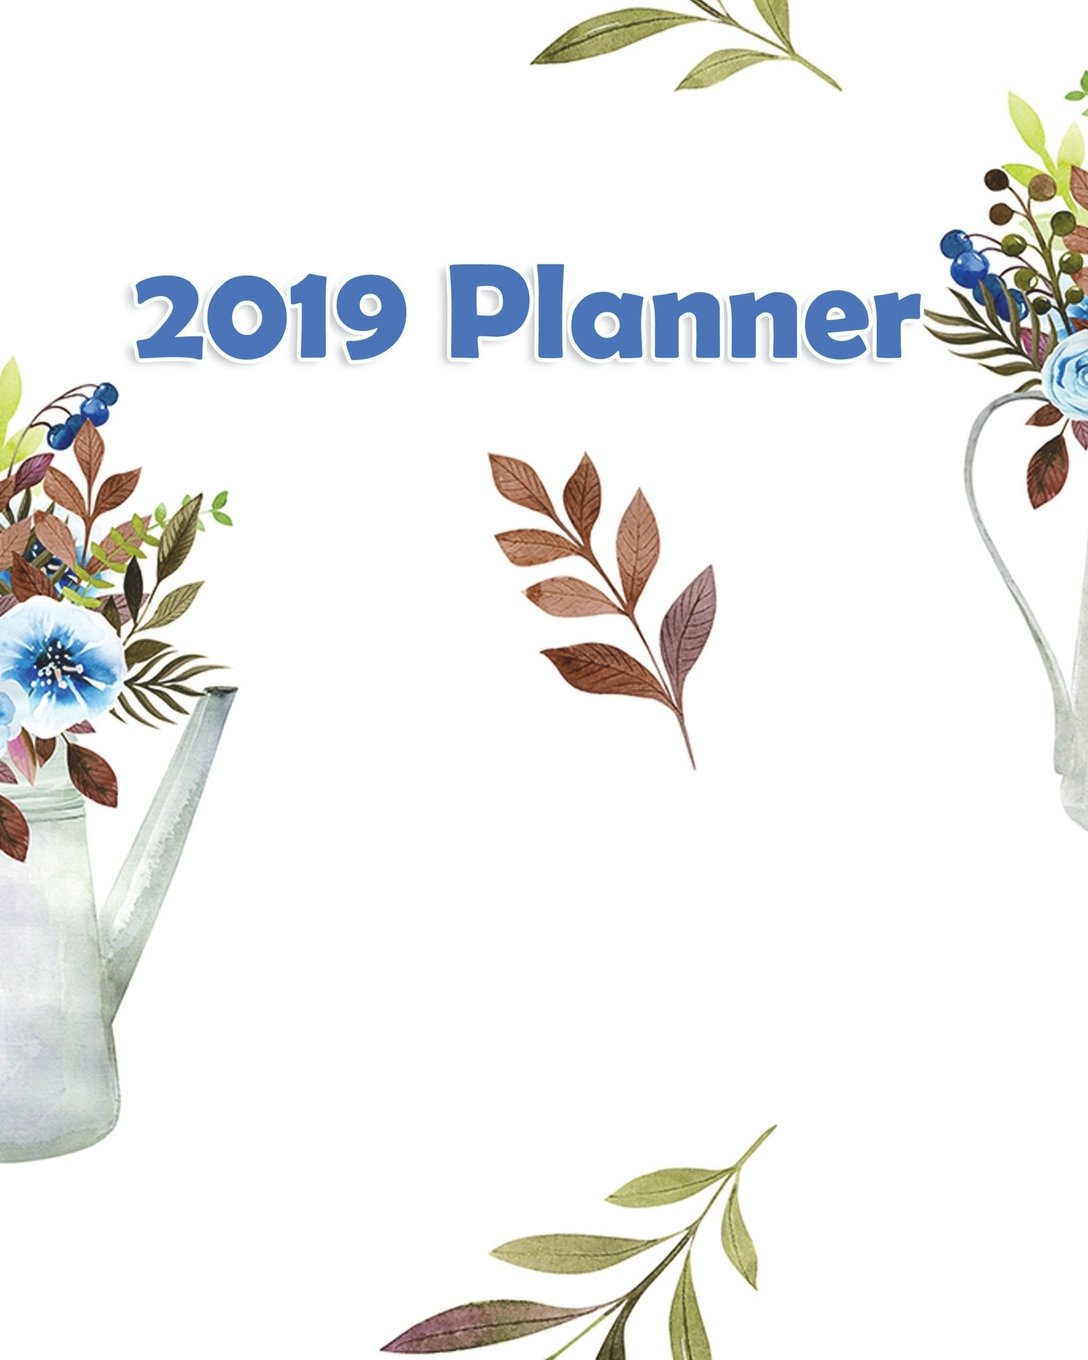 Read Online 2019 Planner: Weekly Planner Monthly Planner  8x10  120 pages  Notes  To do lists  Flower Pot Blue and Brown PDF